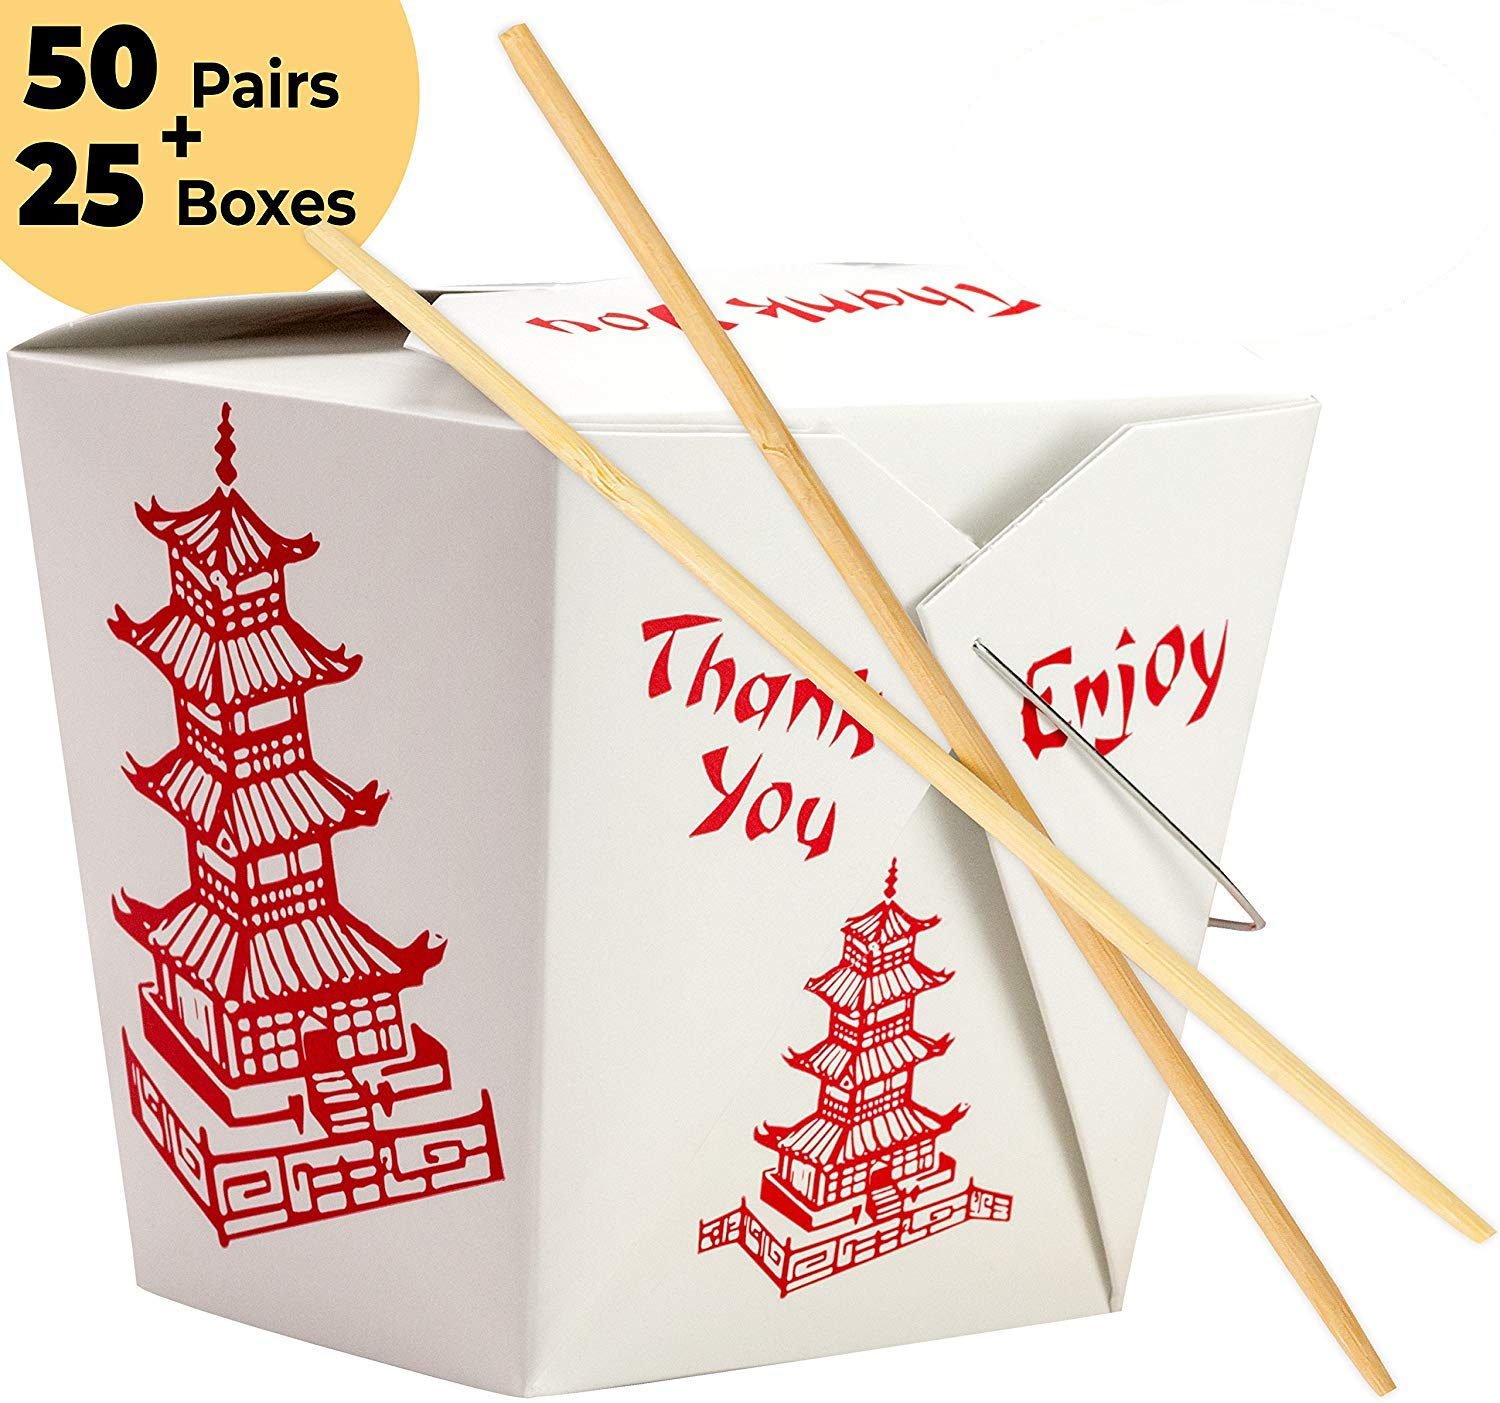 25 Chinese Design 32 Oz Take Out Food Containers and 50 Premium, Sleeved and Separated Bamboo Chopsticks By Avant Grub. Stackable, Recyclable Leak And Grease Resistant To Go Box For Events and Parties